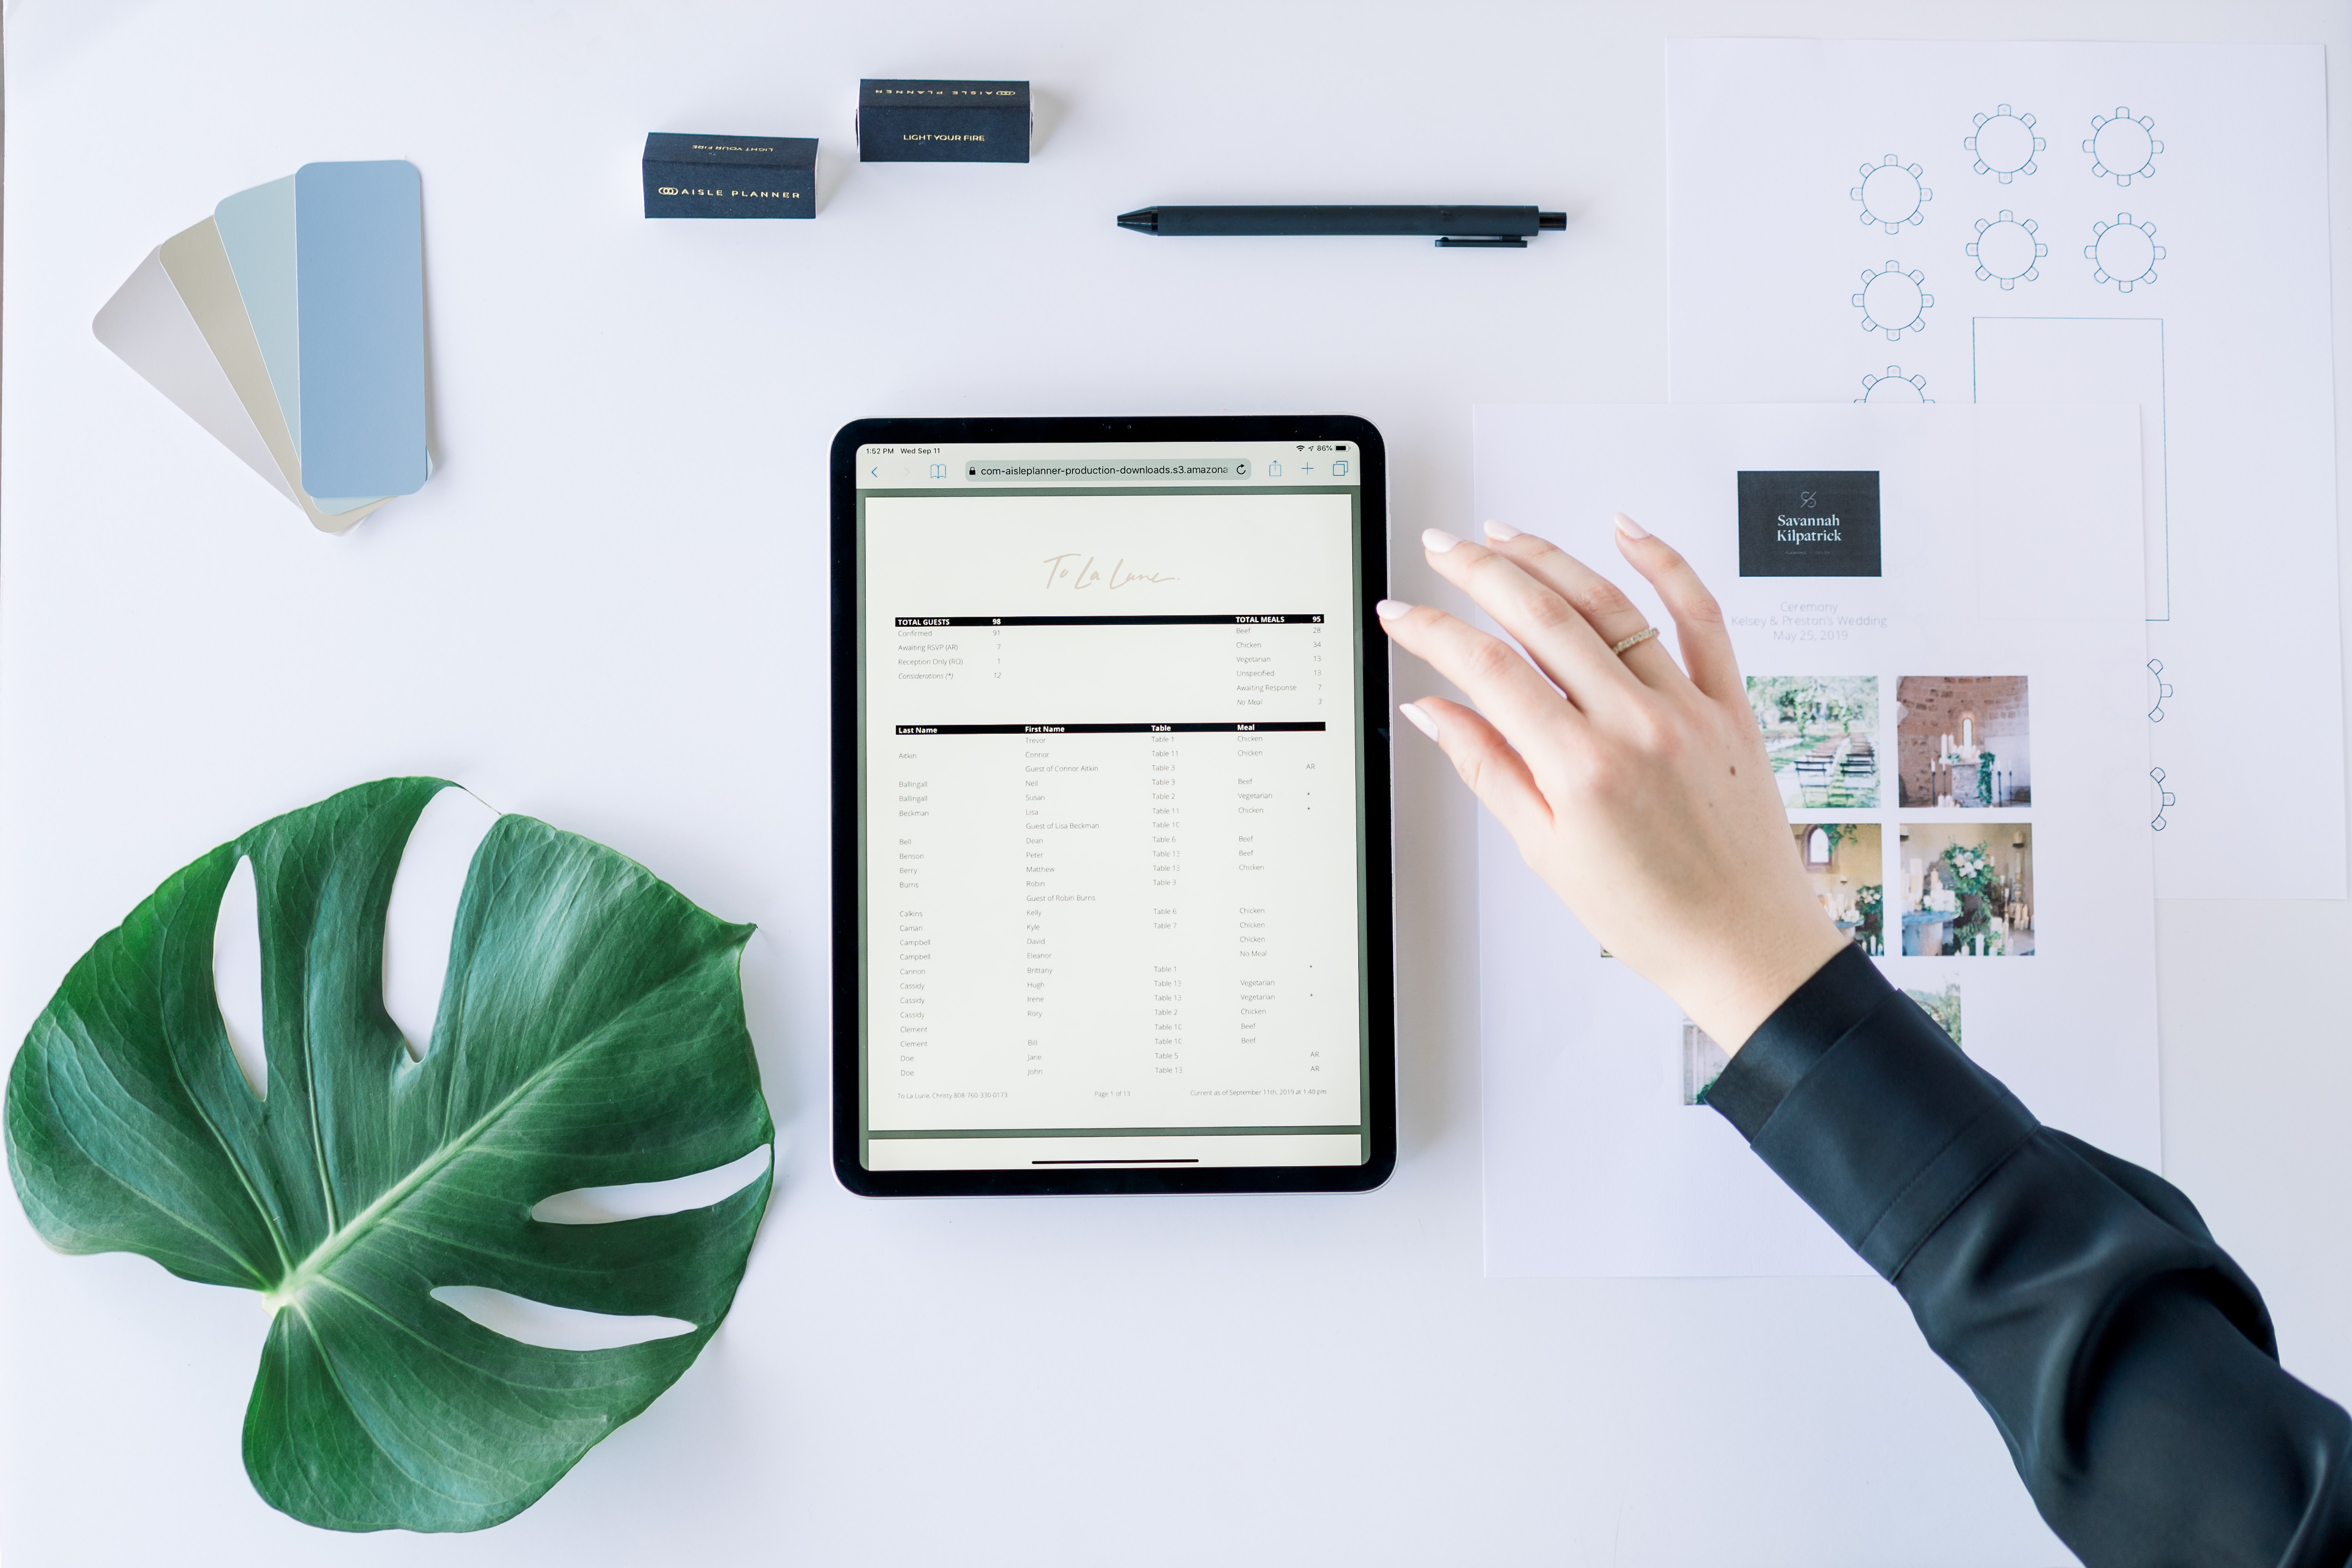 Tablet and office supplies